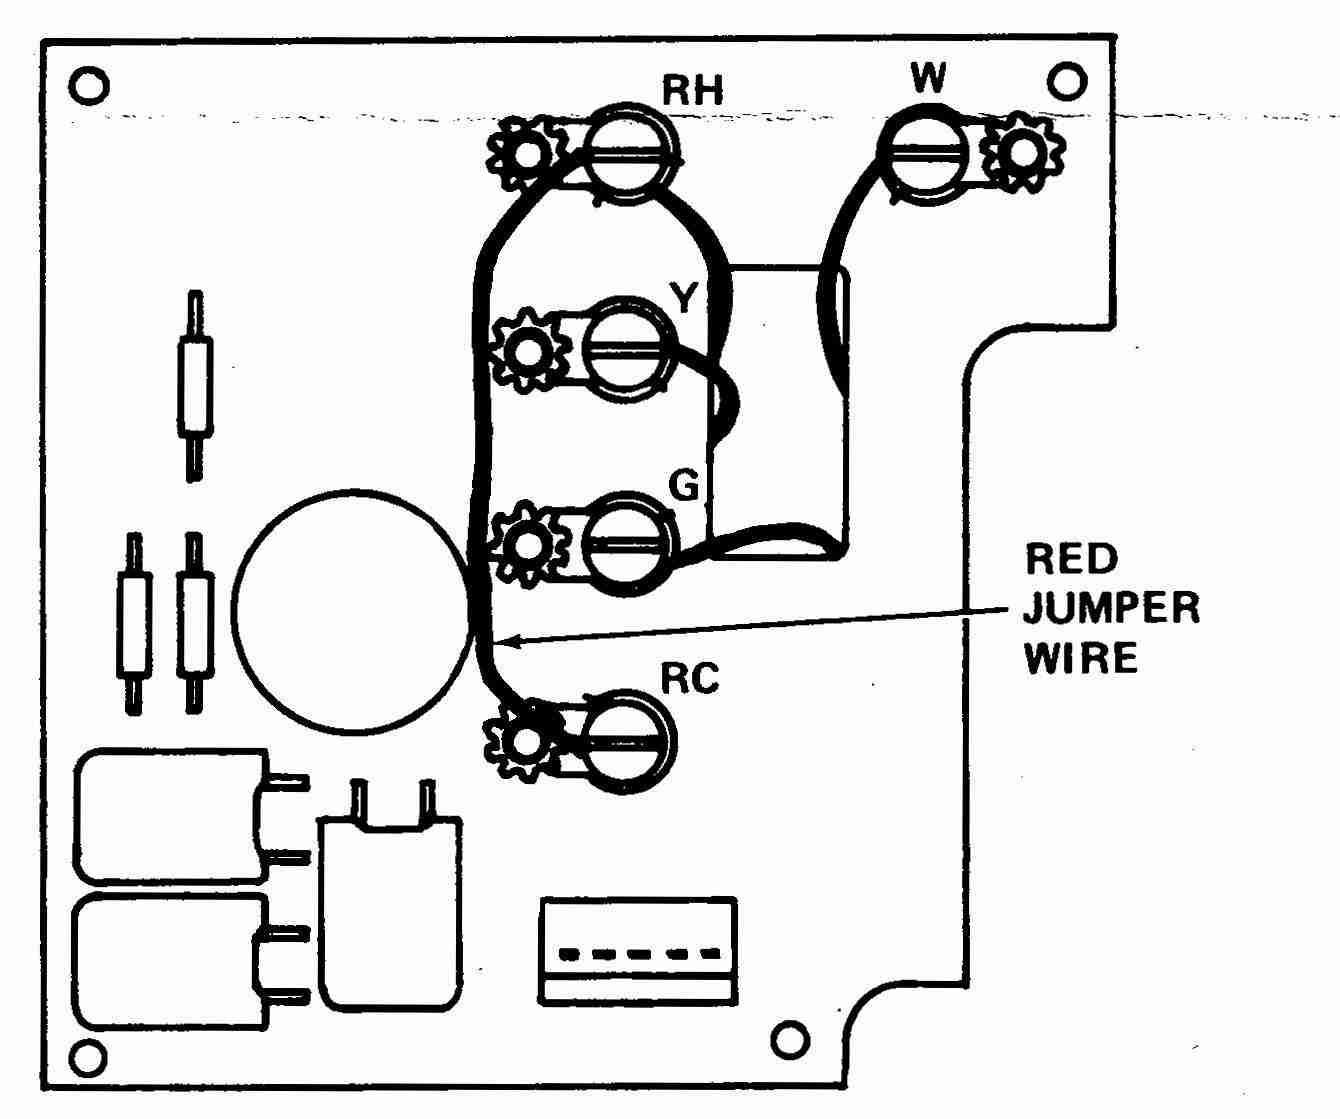 Room thermostat wiring diagrams for HVAC systems